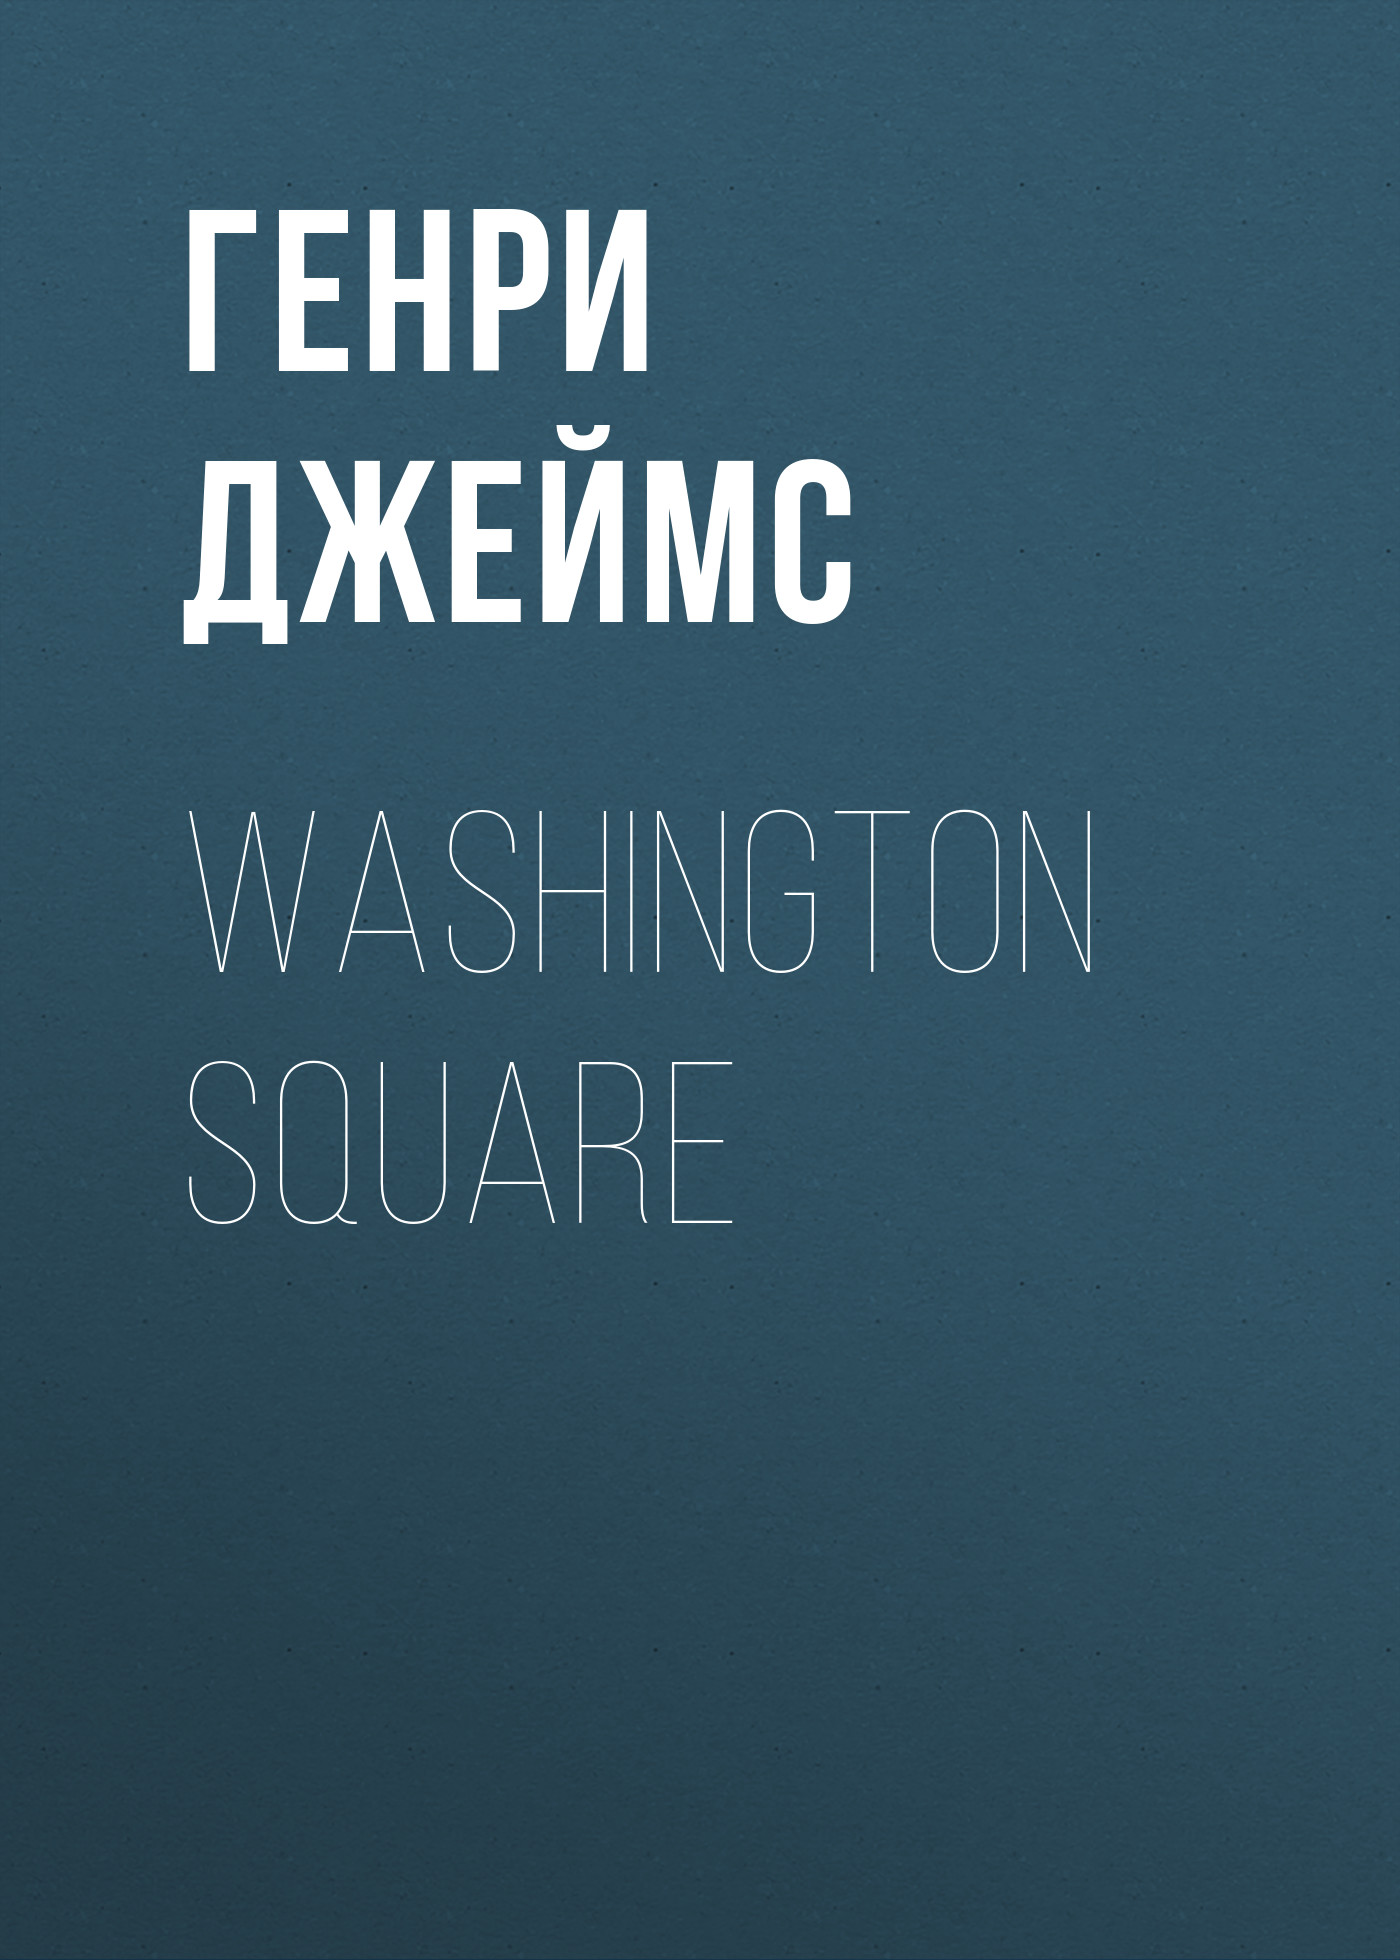 Генри Джеймс Washington Square